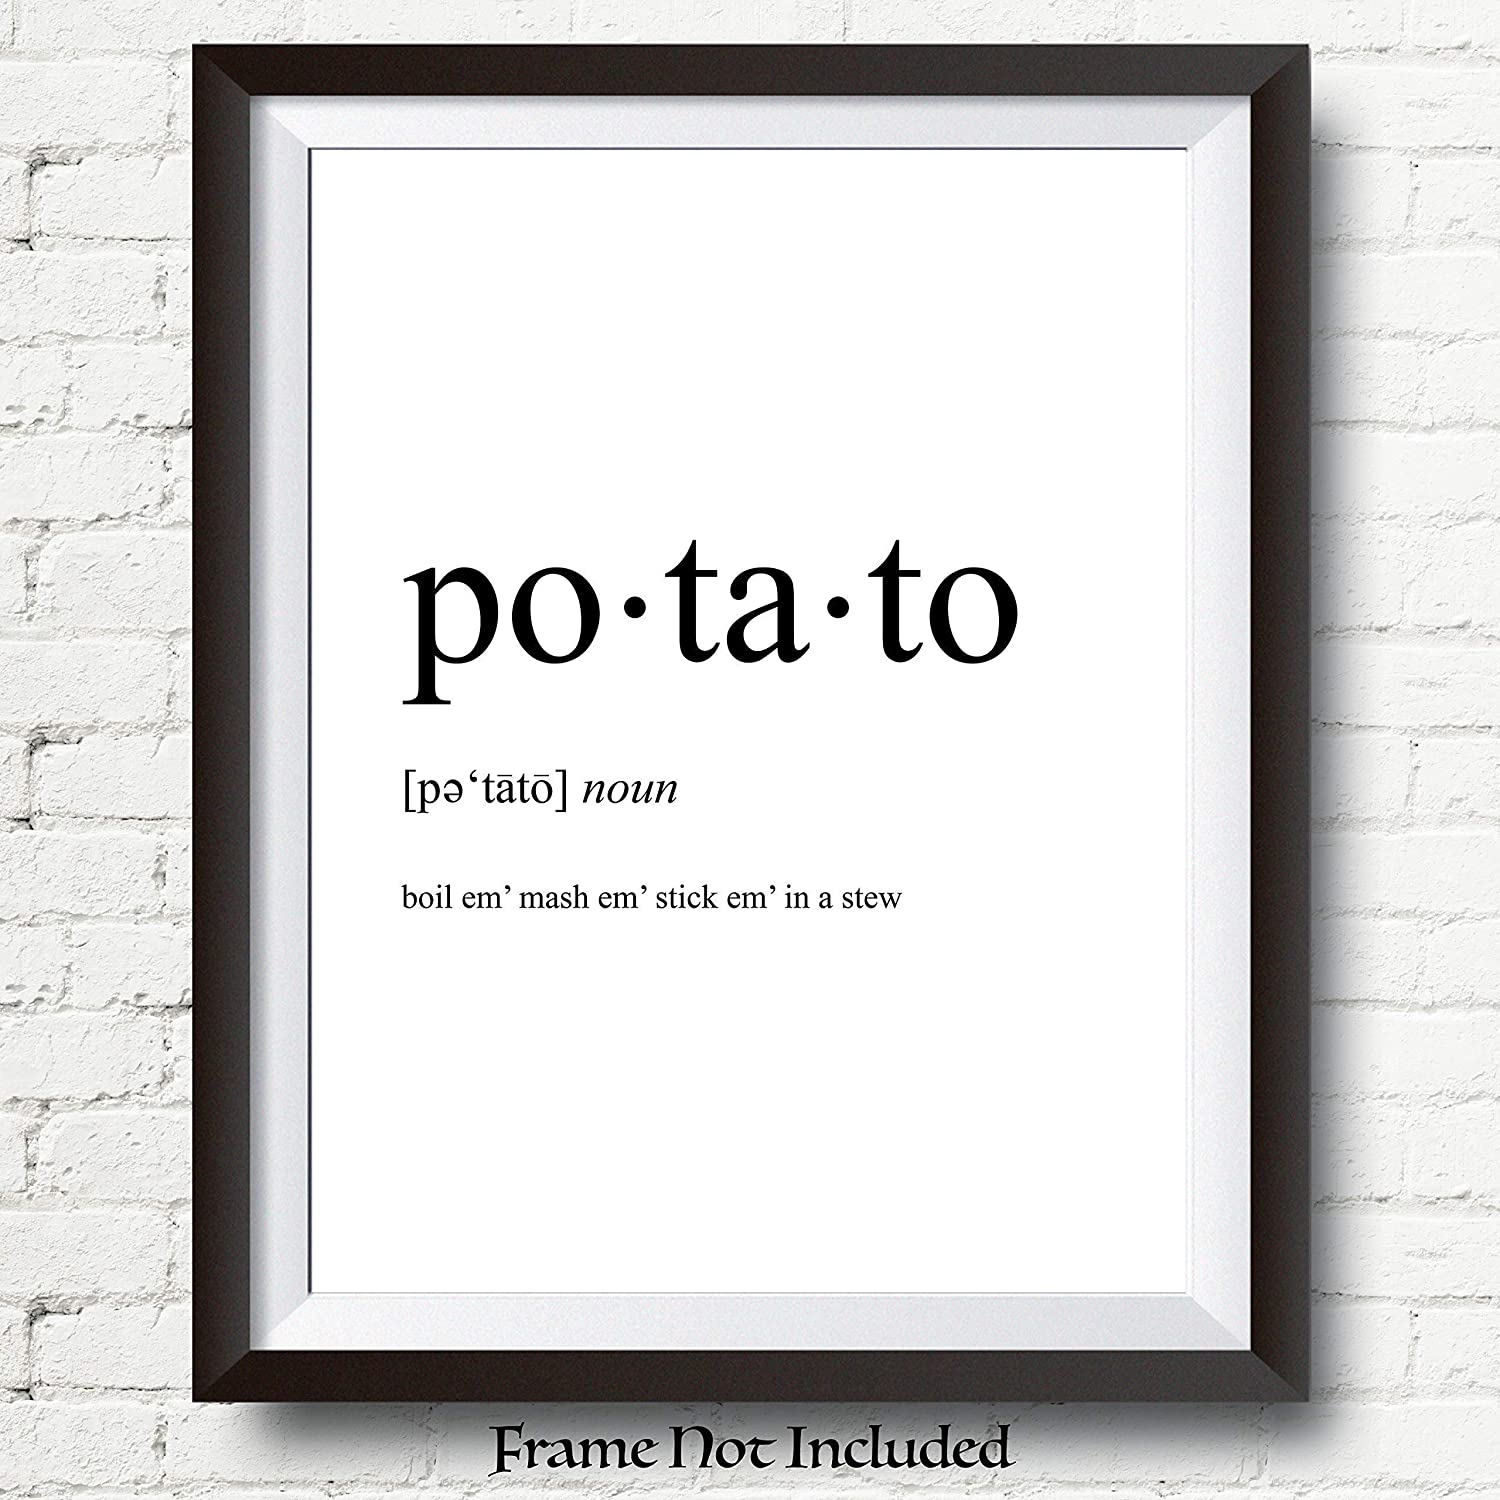 Amazon Com Lord Of The Rings Poster Sam Gamgee Potato Definition Poster Boil Em Mash Em Taters 11x14 Unframed Print Wallworthyprints Great Gift For Lord Of The Rings